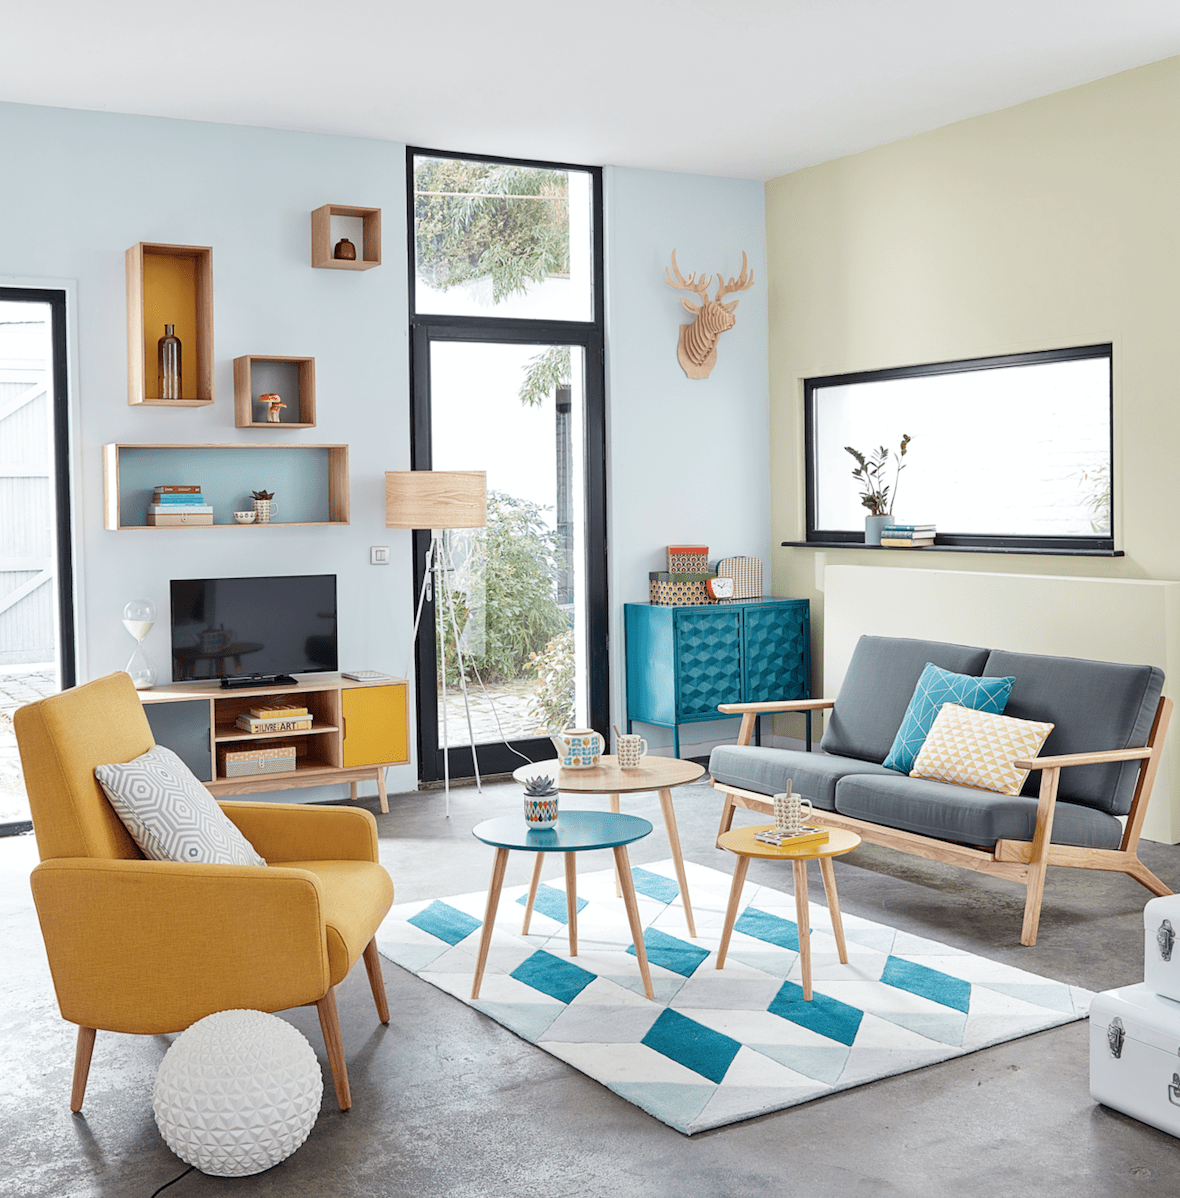 The 5 best colours for a happy home according to an interiors expert